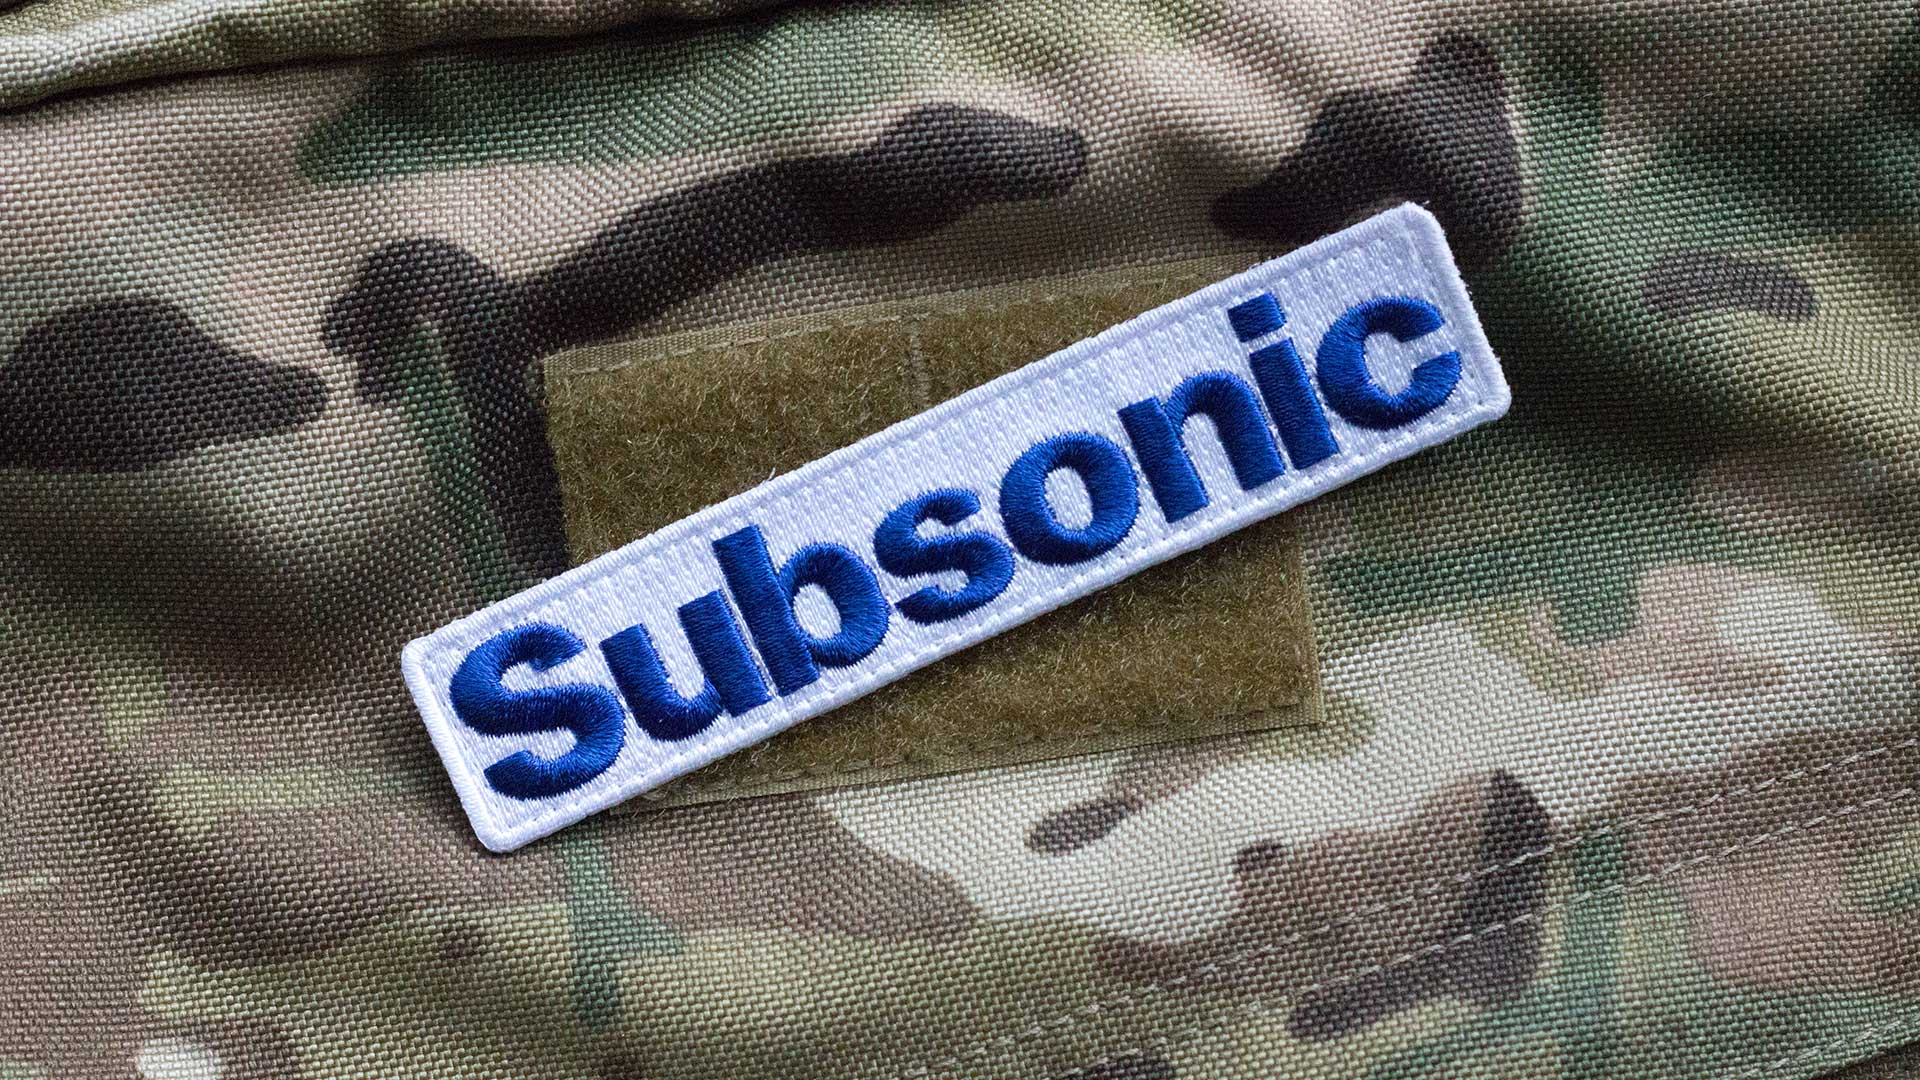 Subsonic Morale Patch Detail 2